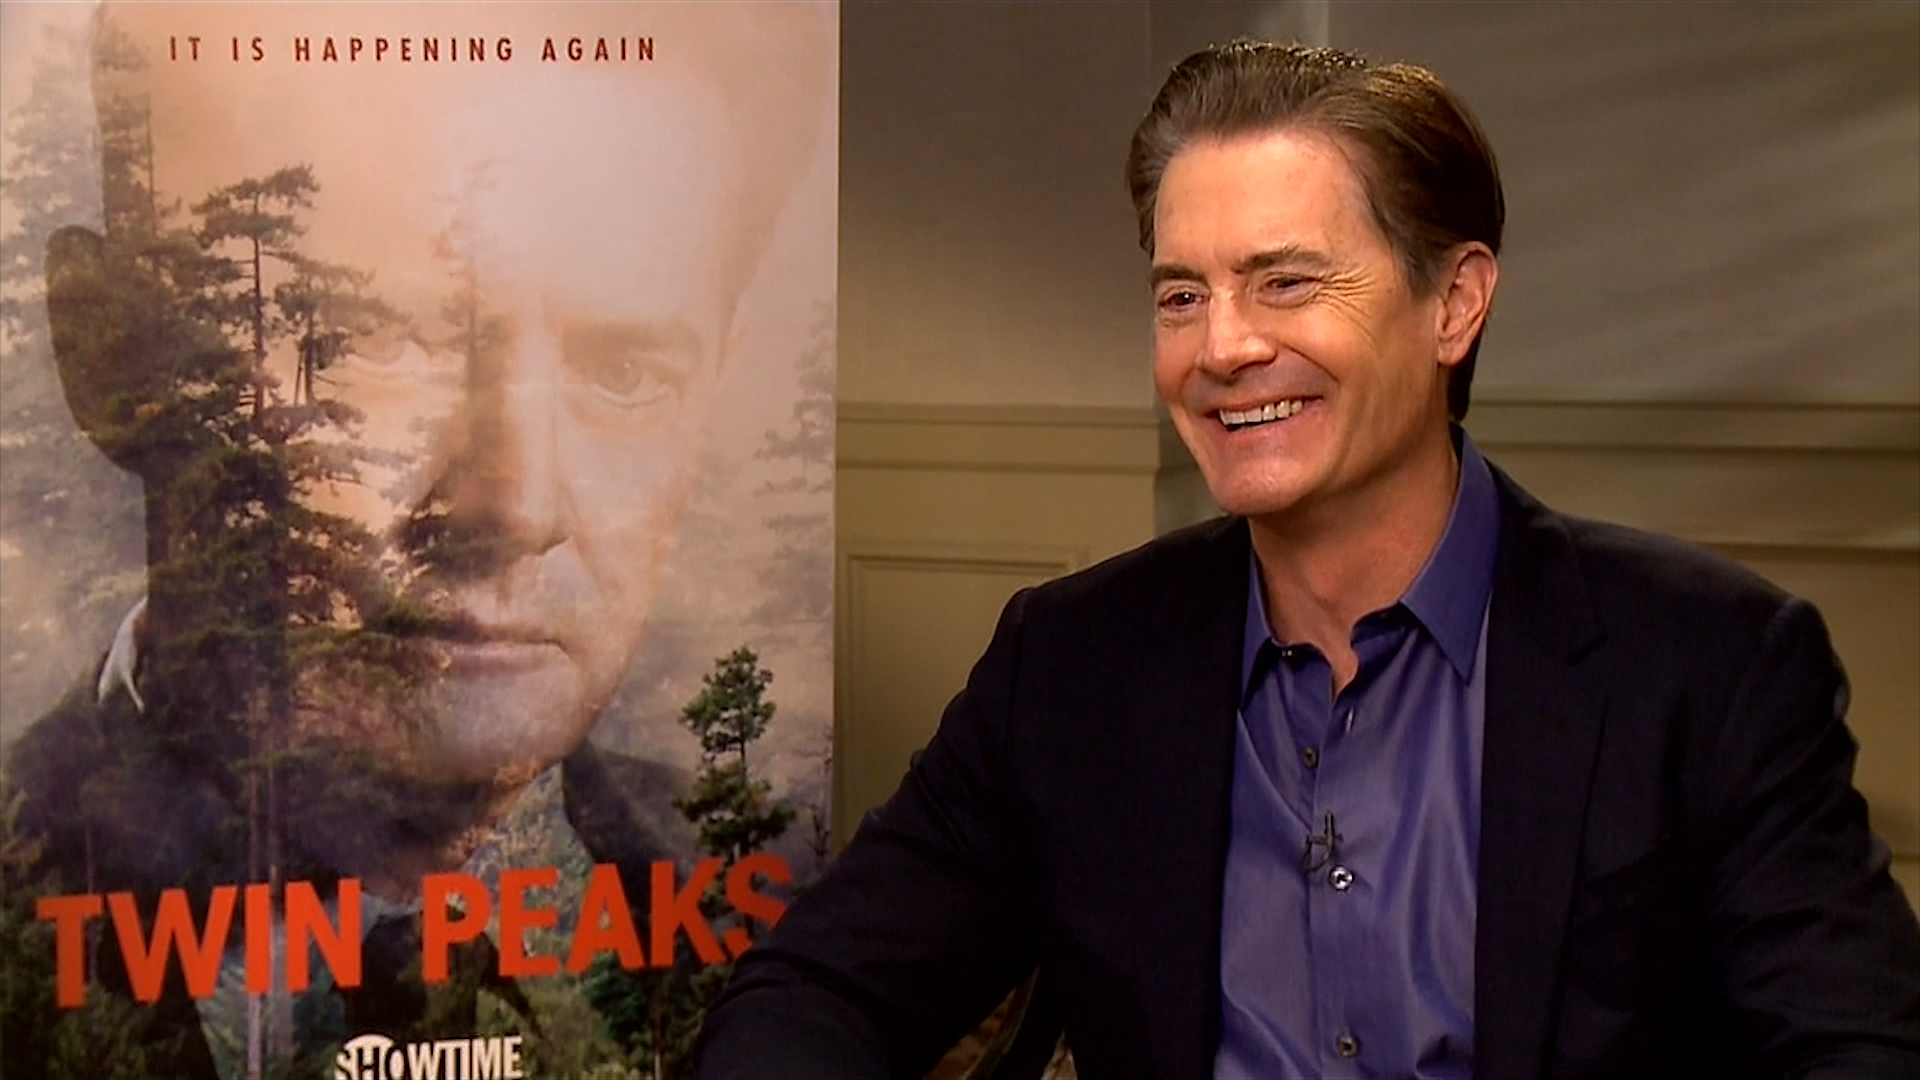 Kyle MacLachlan plays would you rather